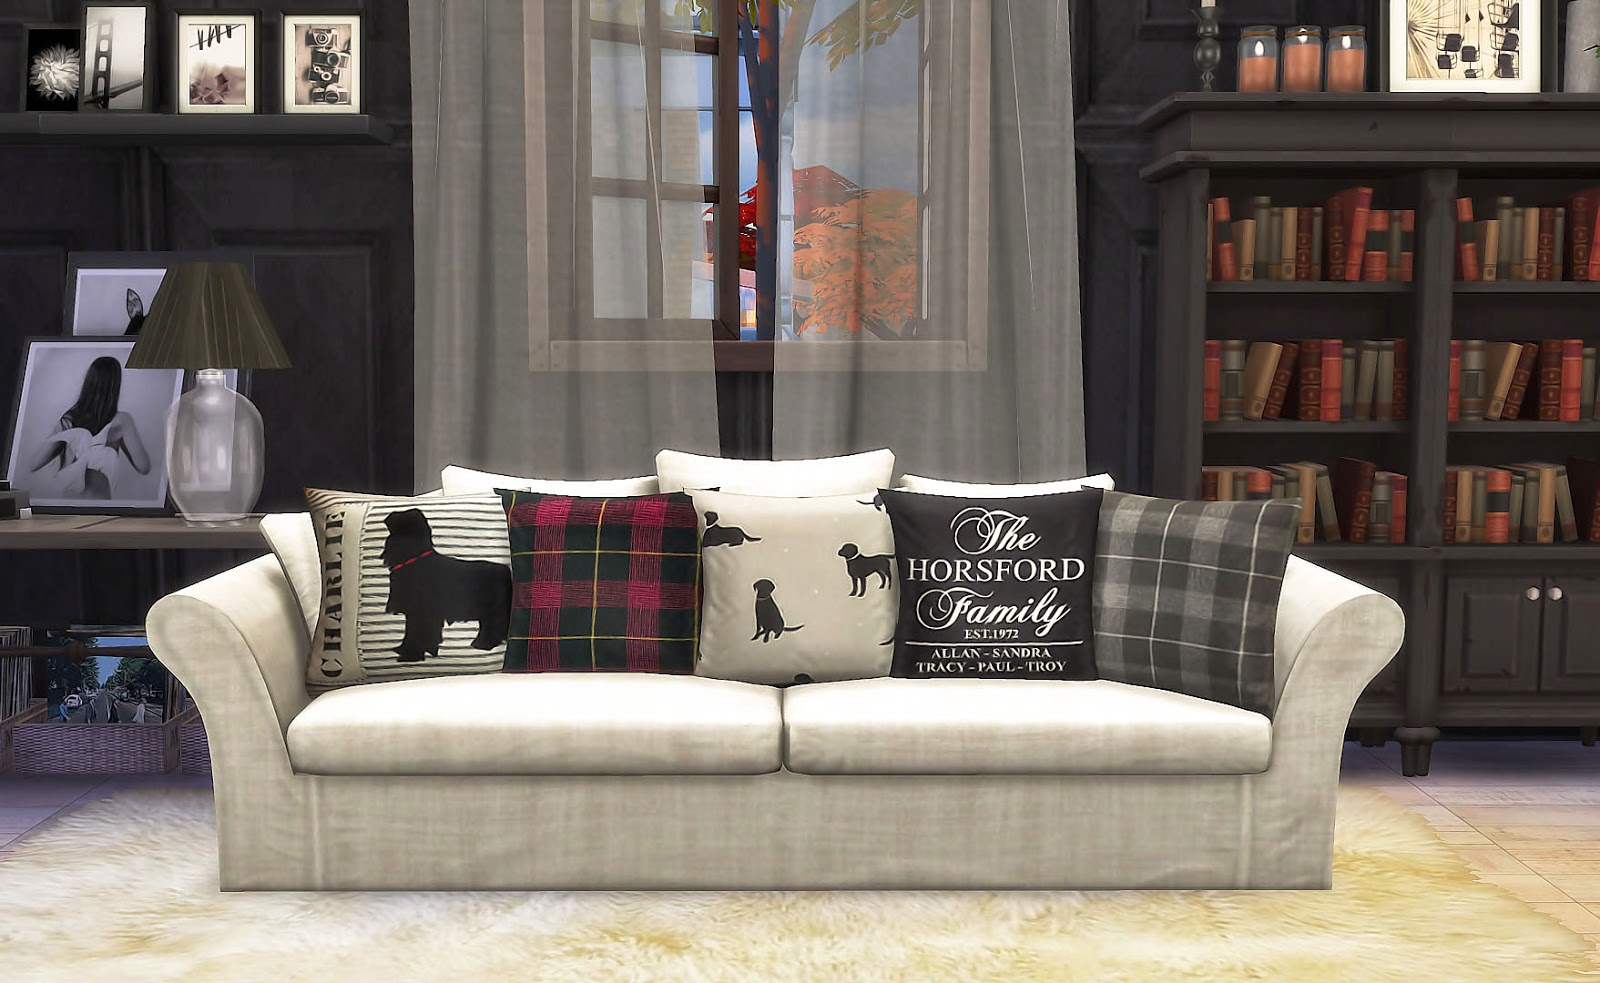 Nice Sofa Set Pic What Wall Colour Goes With Brown Leather Sims4 Sv Pillow Recolors 抱枕改色 - Ruby's Home Design